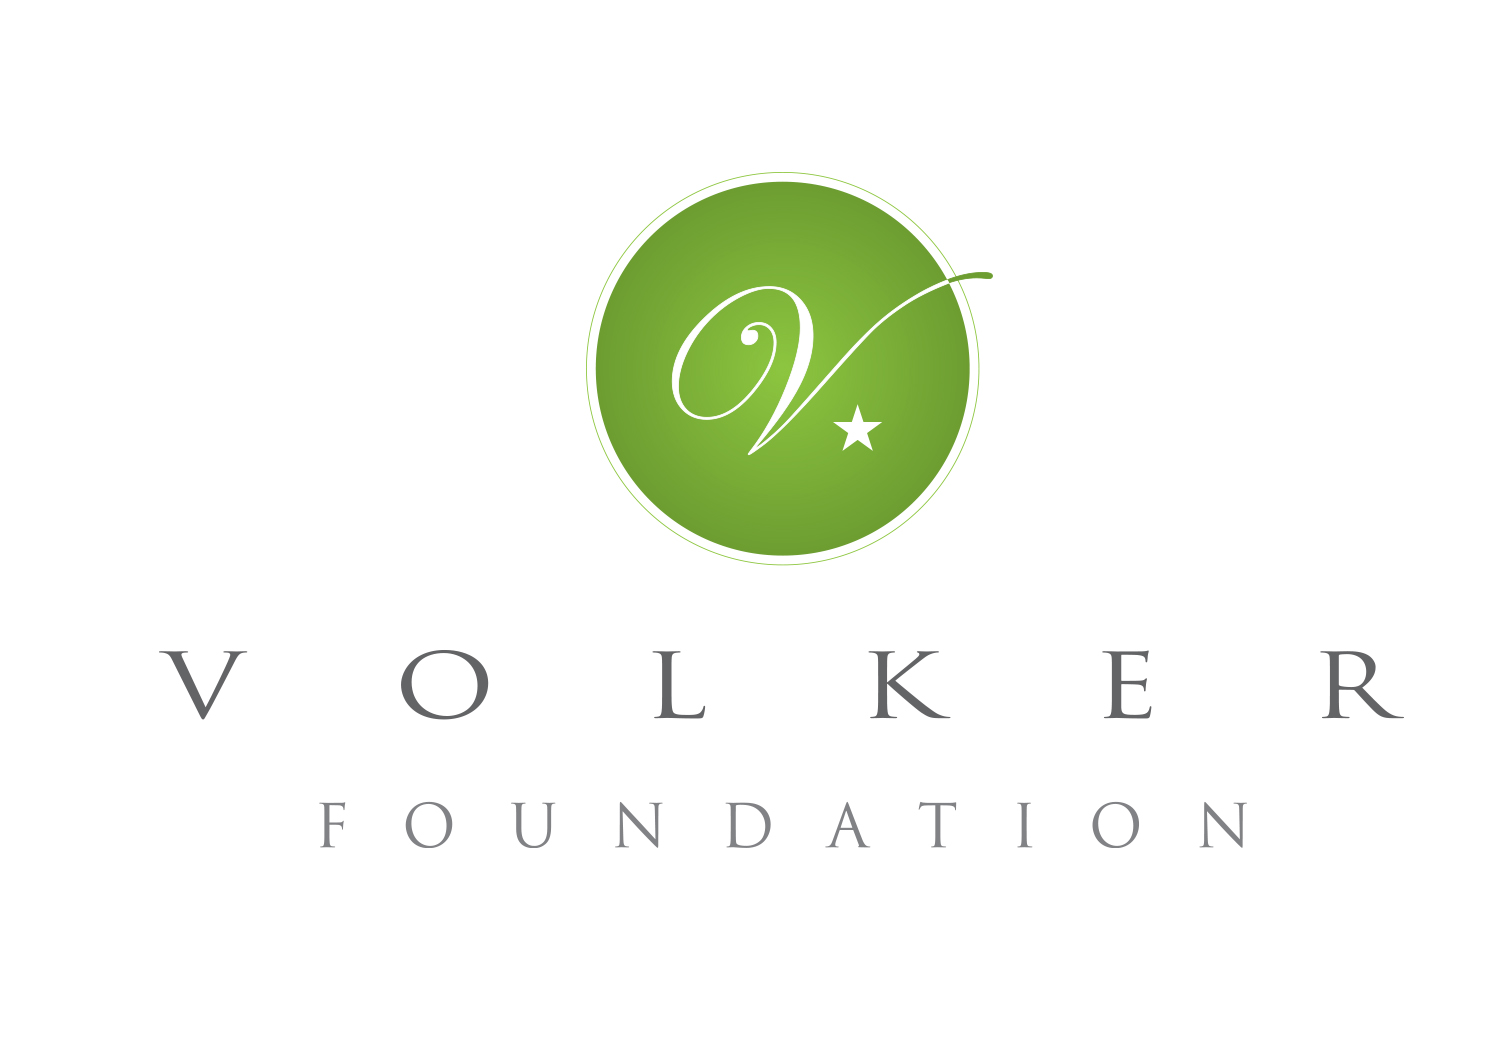 Volker Foundation_4 color logo copy.jpg